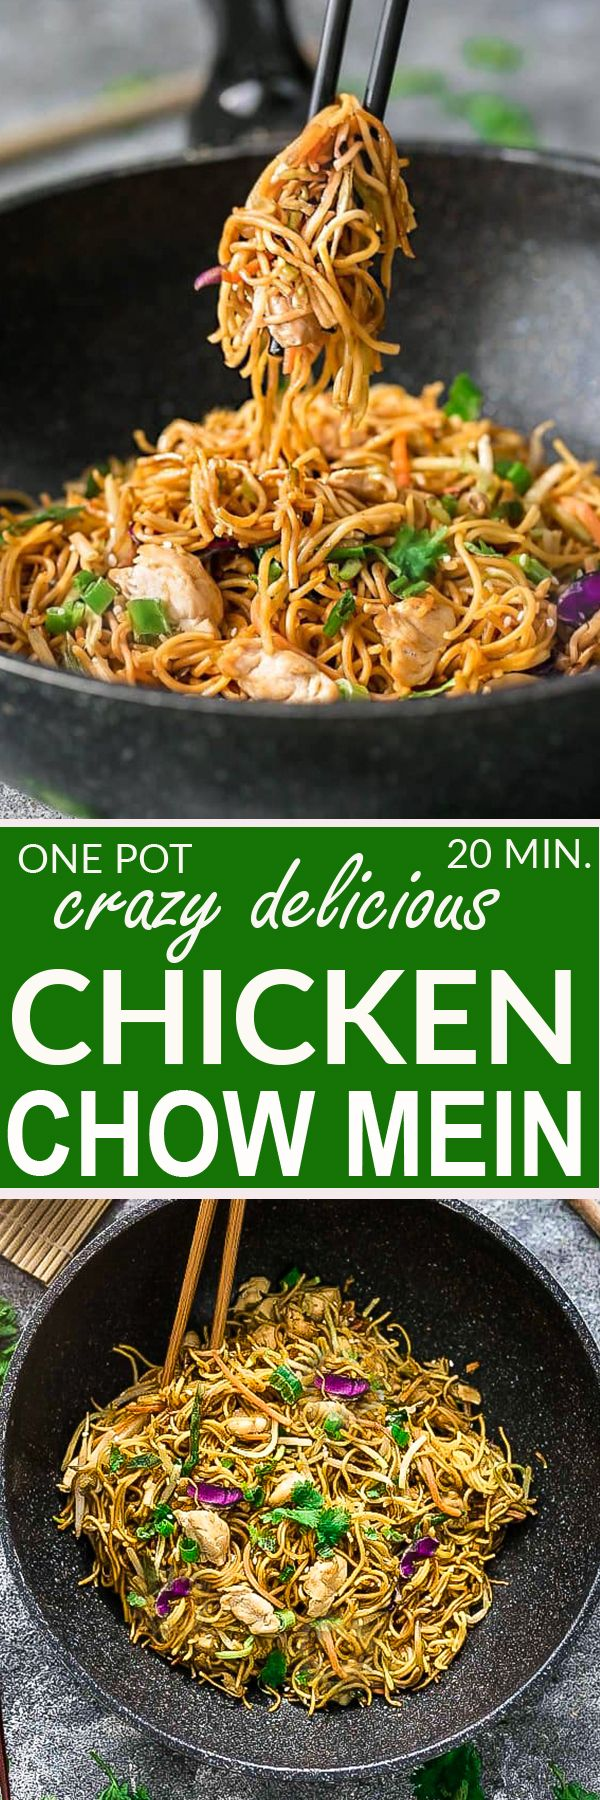 This is the BEST recipe for authentic Chicken Chow Mein from a top Chinese Restaurant chef. It is the perfect easy weeknight meal and the best part of all, it comes together in under 20 minutes in just one pot! Forget calling greasy takeout, this simple d